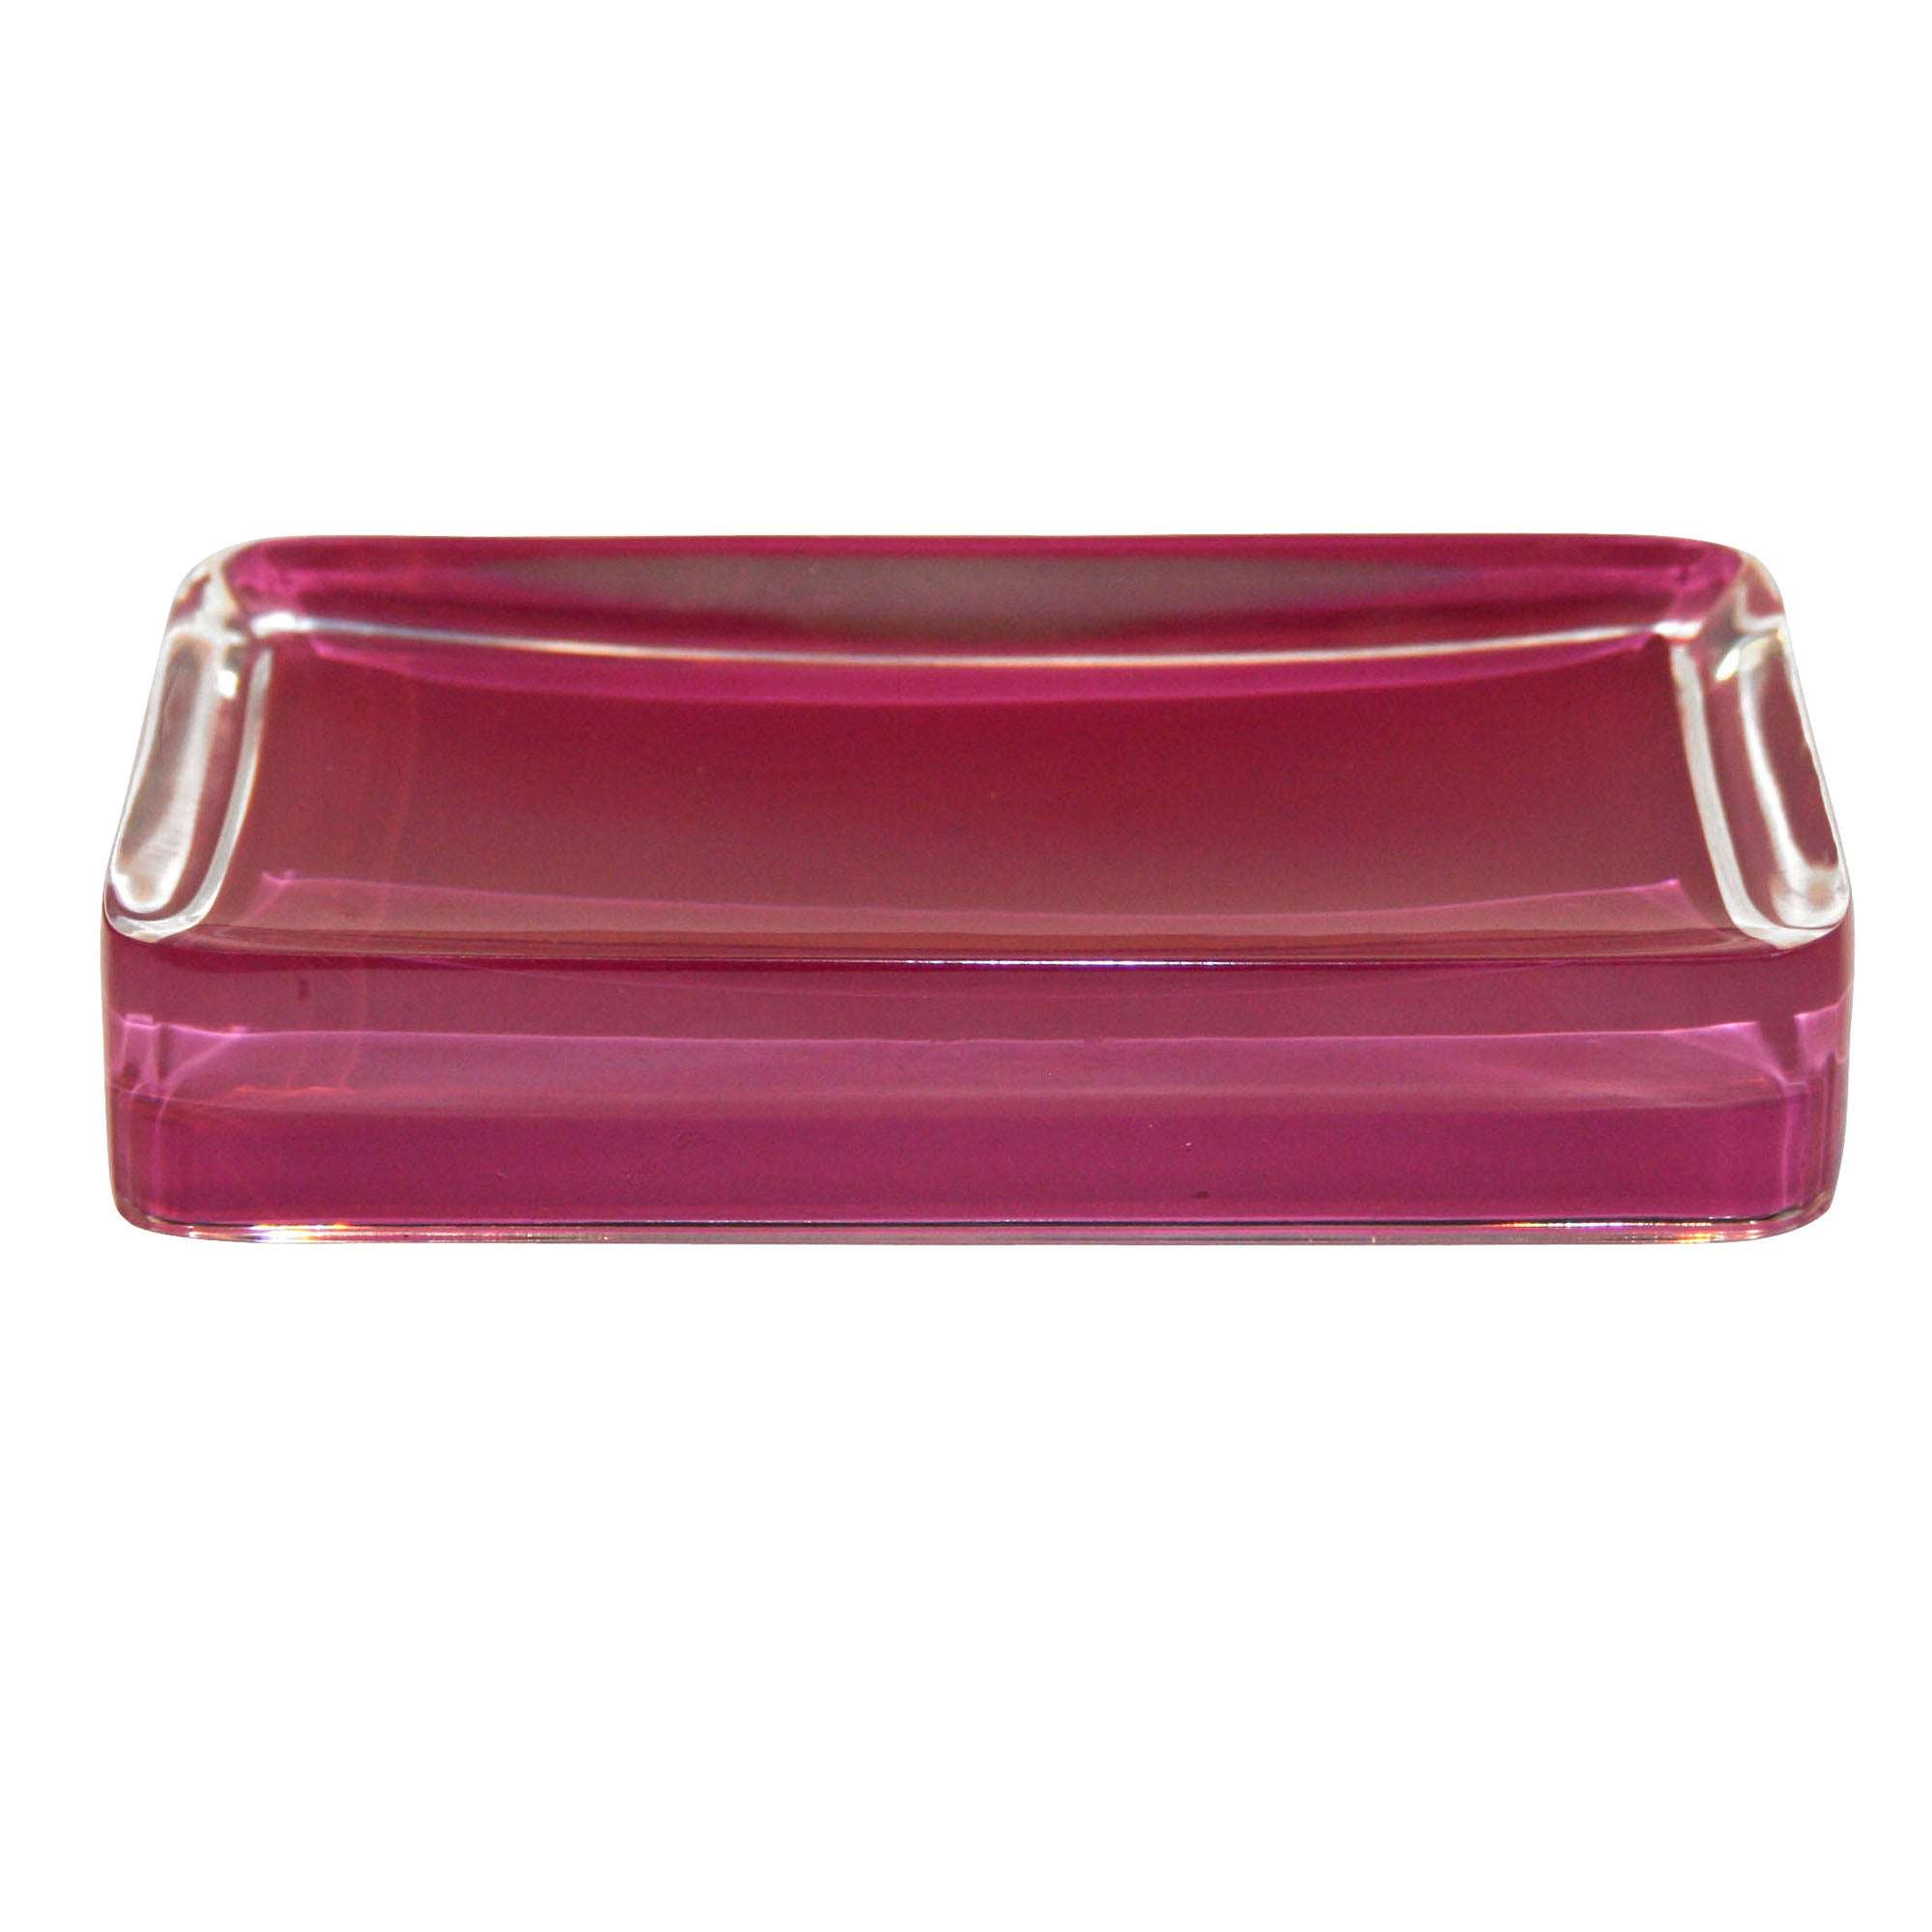 Raspberry Brights Collection Acrylic Soap Dish